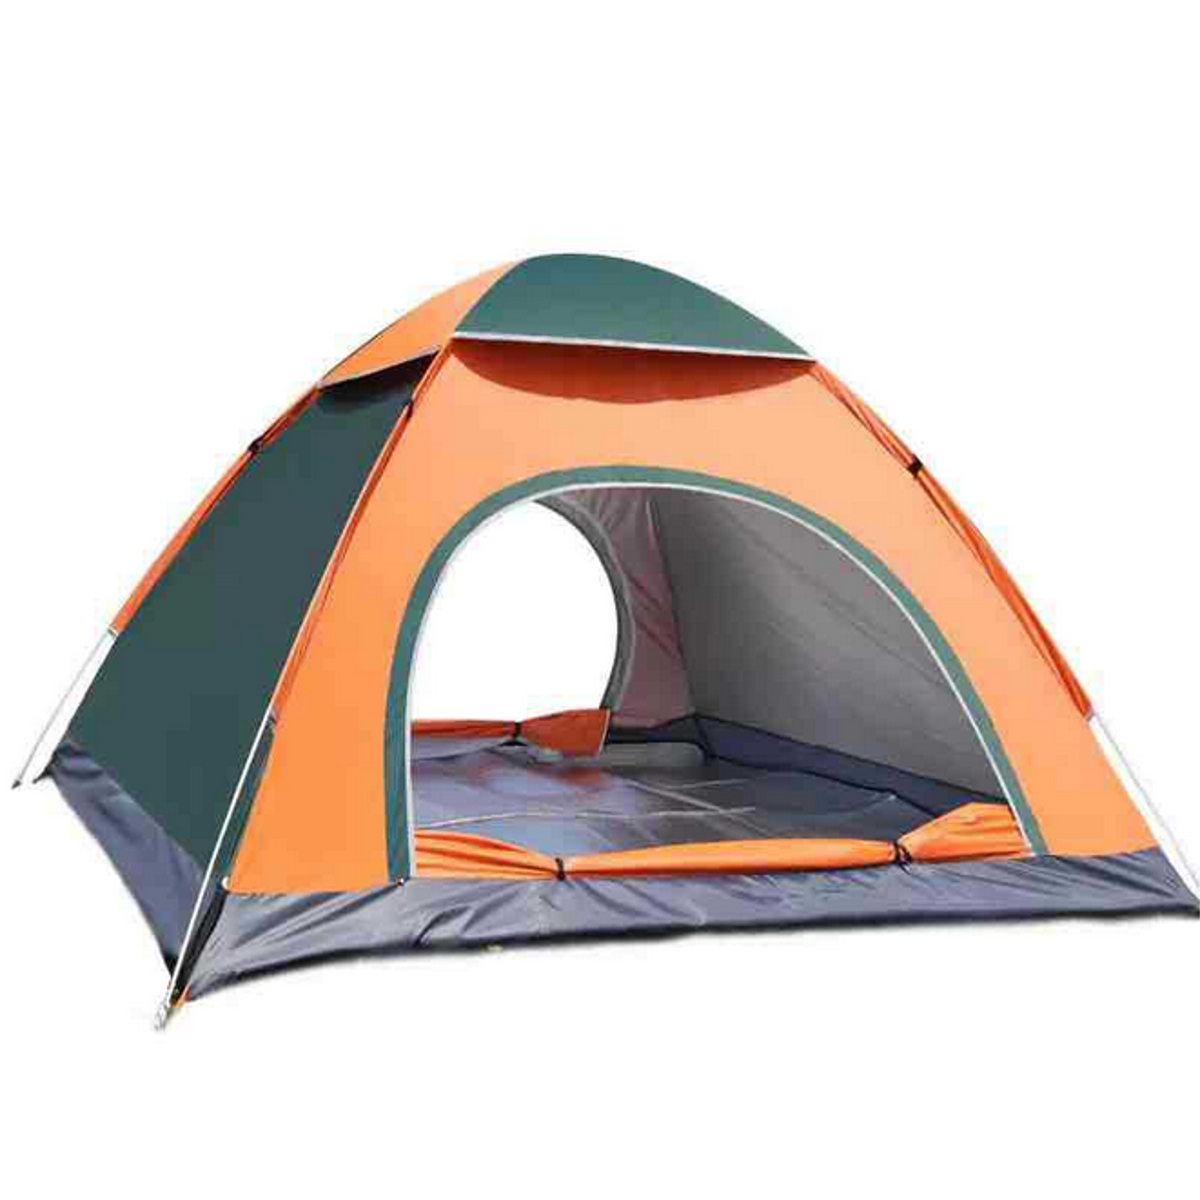 190T Oxford 2-3 Person Family C&ing Tents Dome Tent Easy Setup Waterproof Windproof  sc 1 st  Walmart & Family Camping Tents